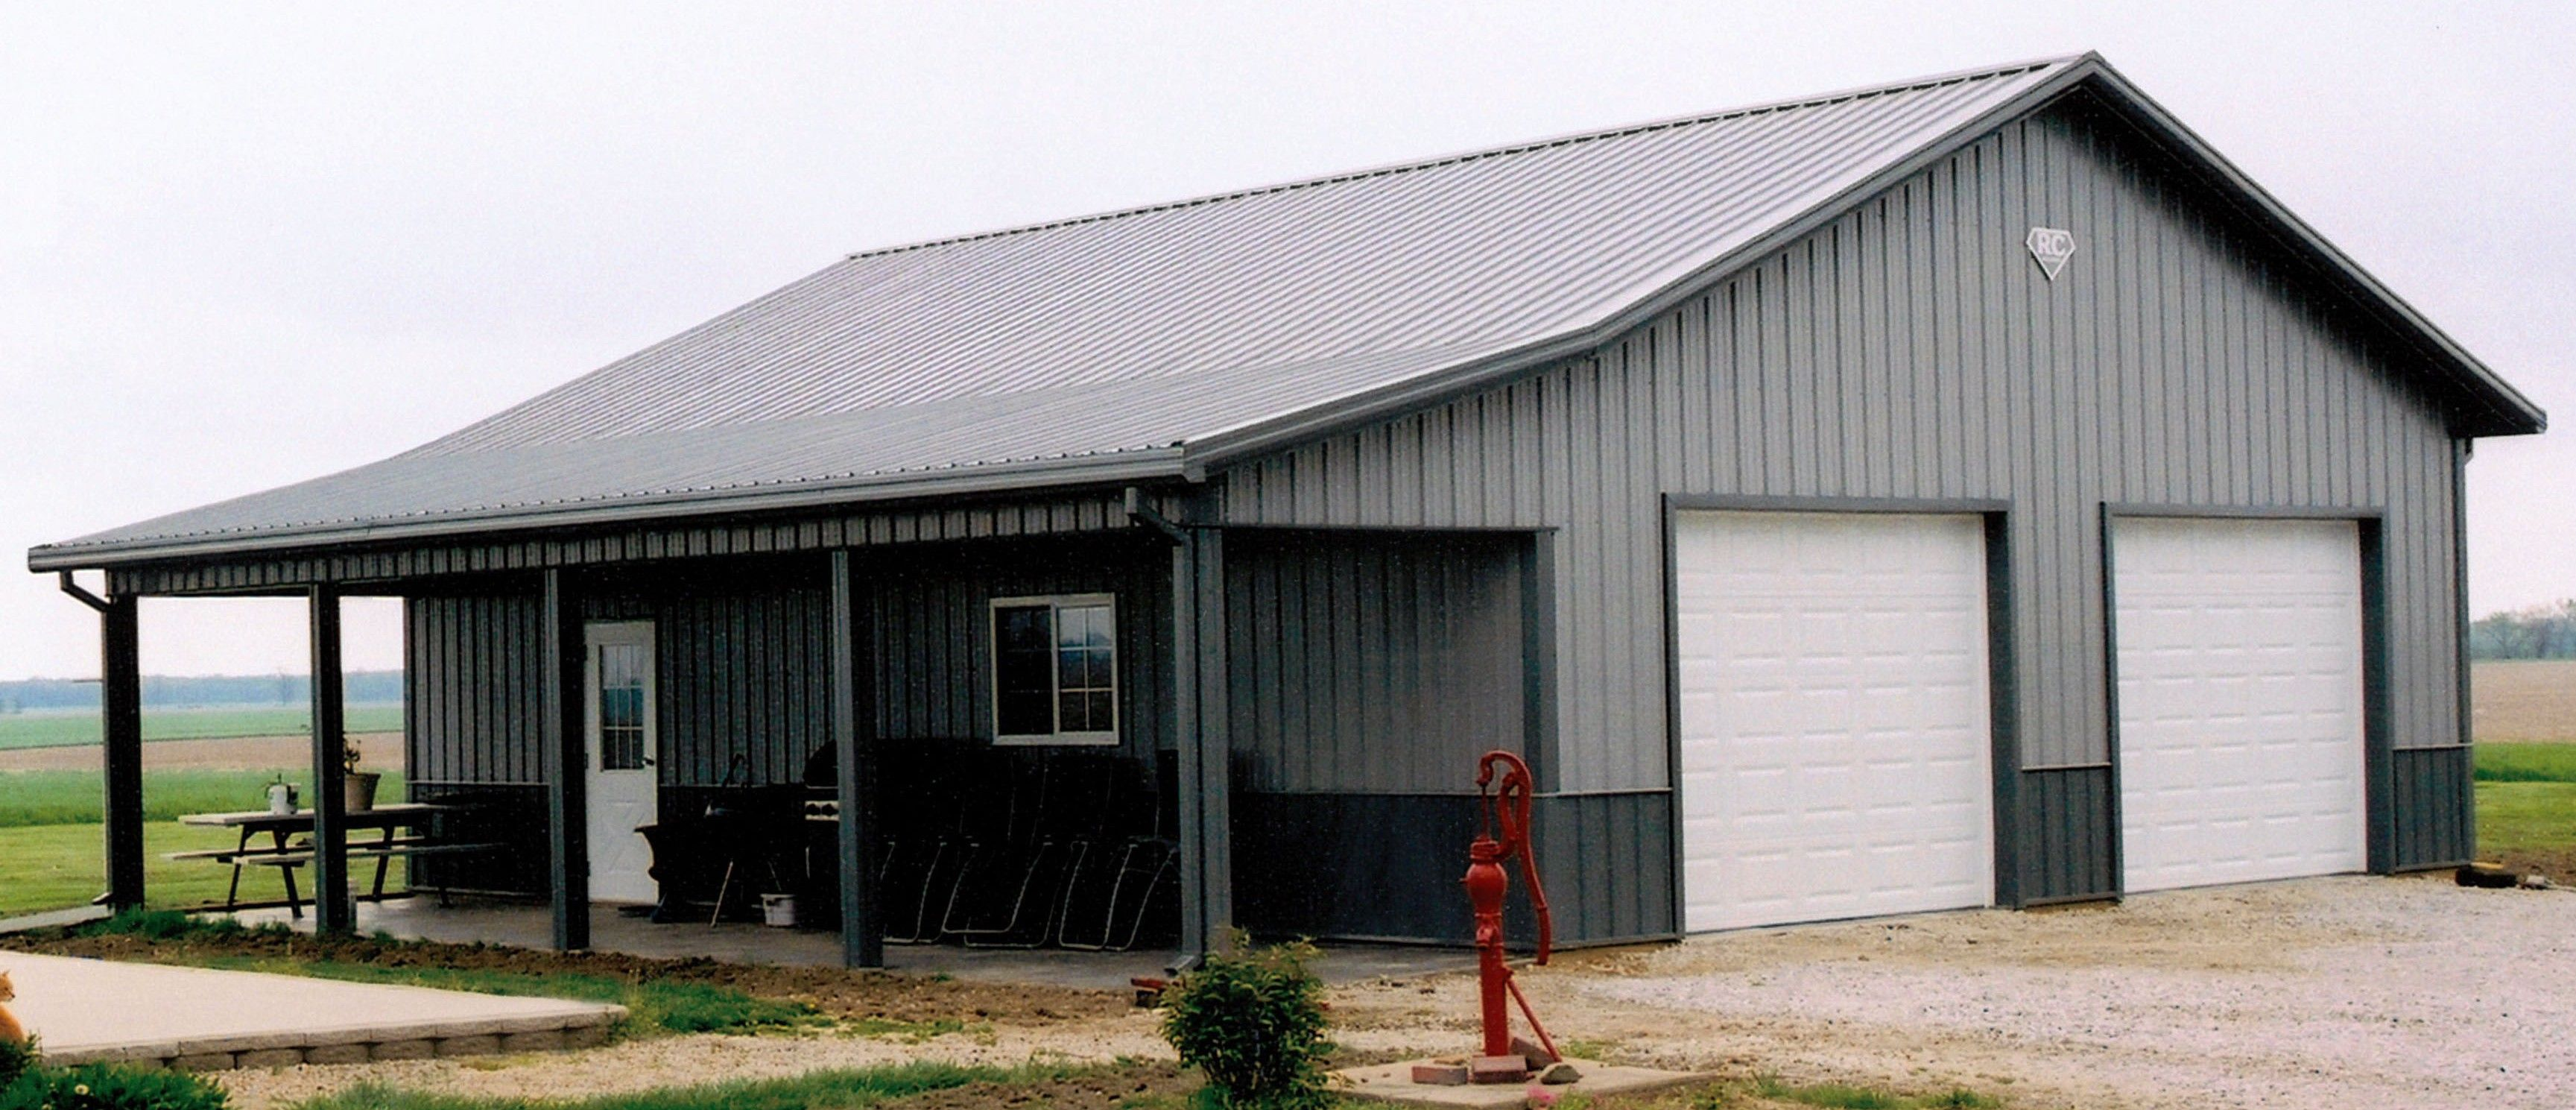 Garage Storage Buildings Metal Building Homes Top Pictures Gallery Online Barndo